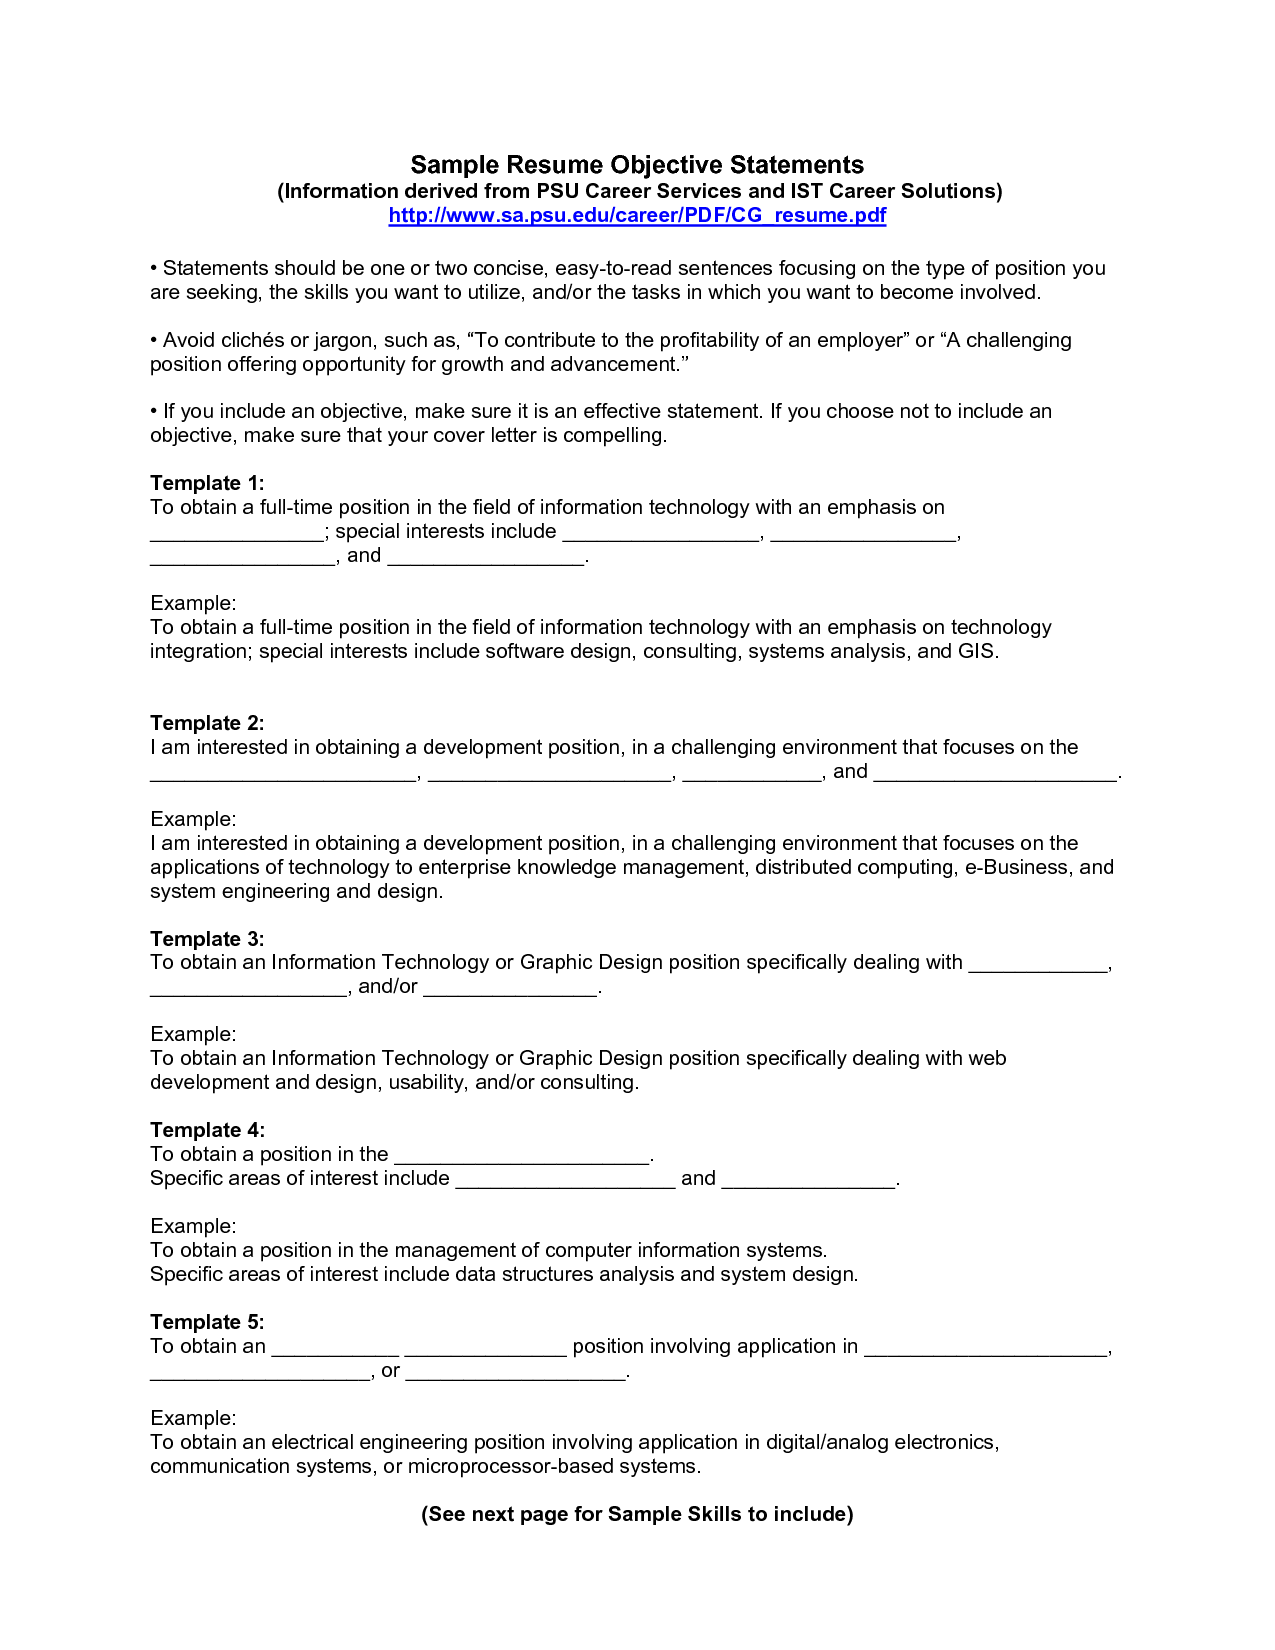 Examples Of Skills For Resume Mesmerizing Resume Objective Statement For Teacher  Httpwww.resumecareer .